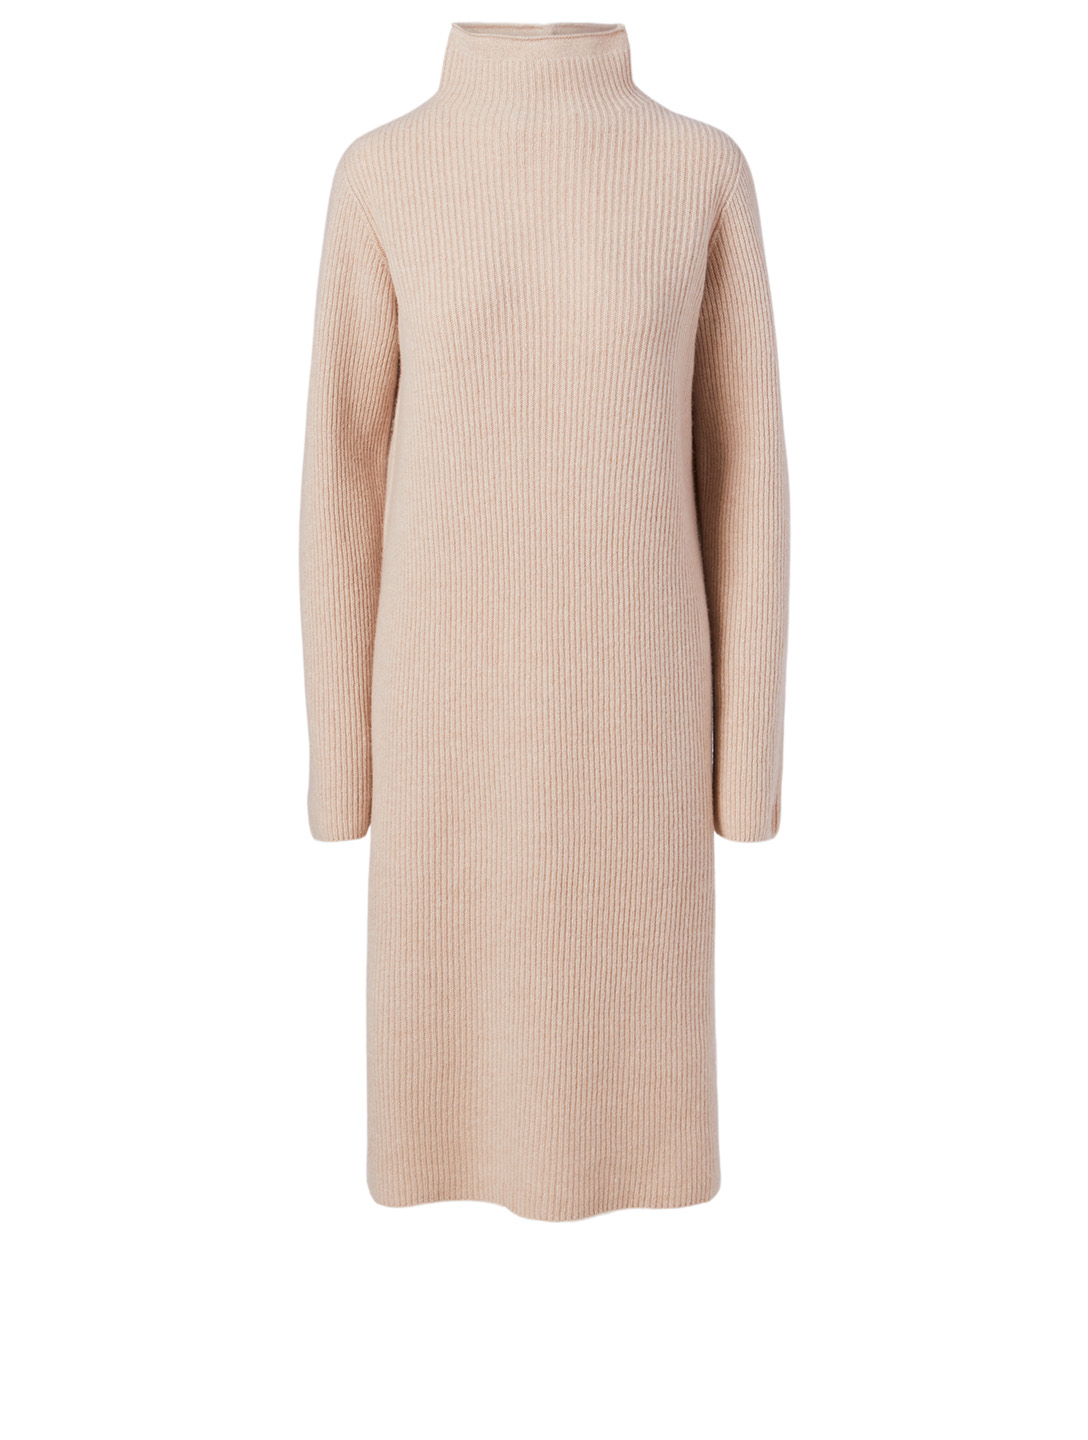 THE ROW Moa Wool And Cashmere Midi Dress Women's Brown